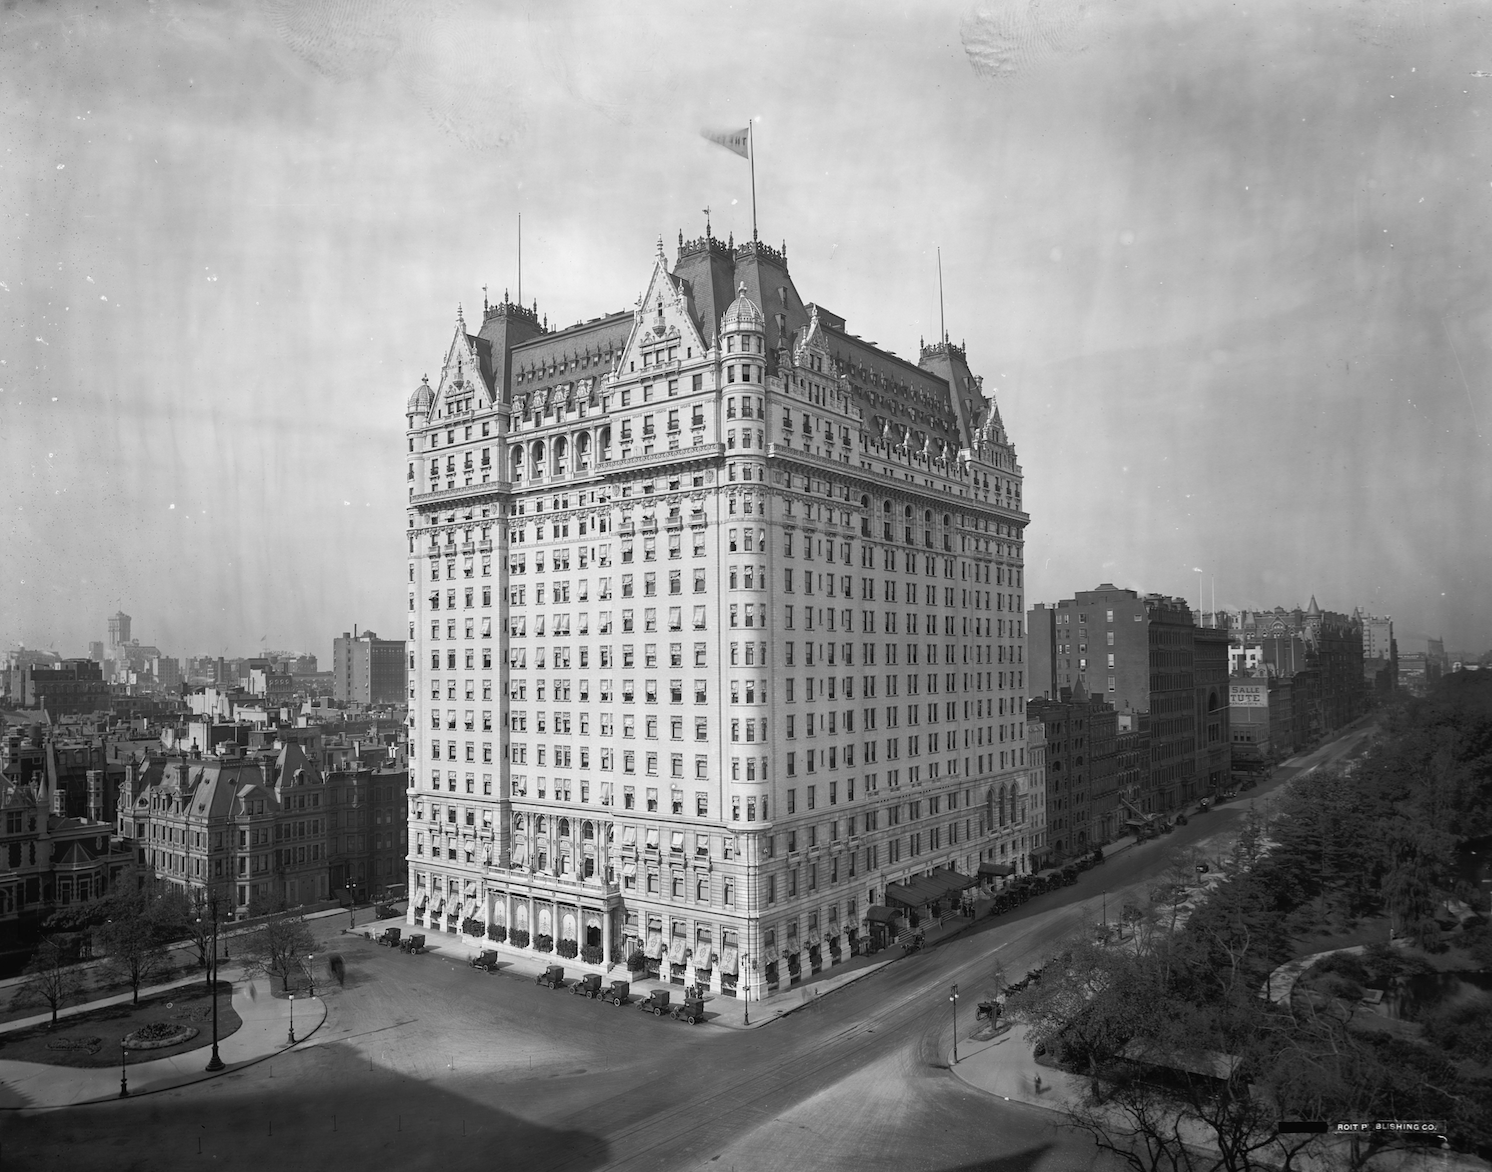 Plaza Hotel, New York City, architect Henry J. Hardenberg, 1907, view from northeast (photograph, c. 1910).  [Public domain. Courtesy of Library of Congress.]